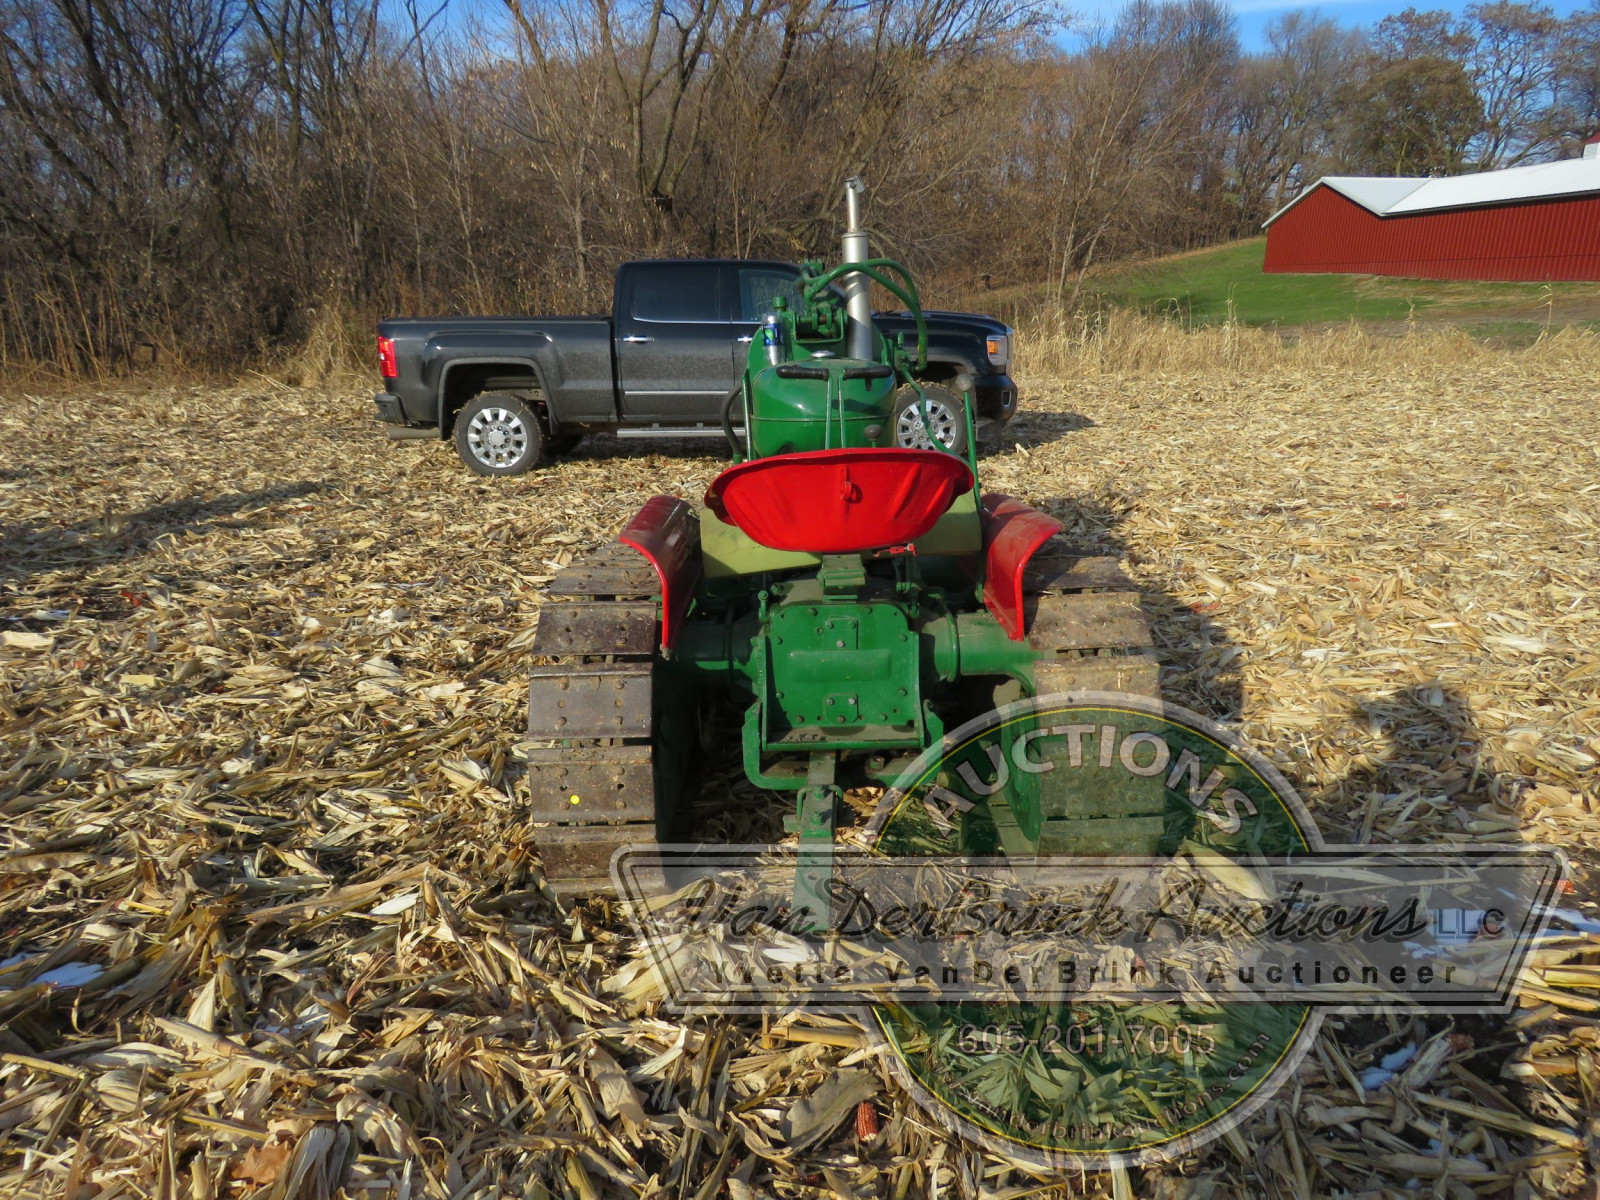 Oliver HG Cletrac Tractor - Image 7